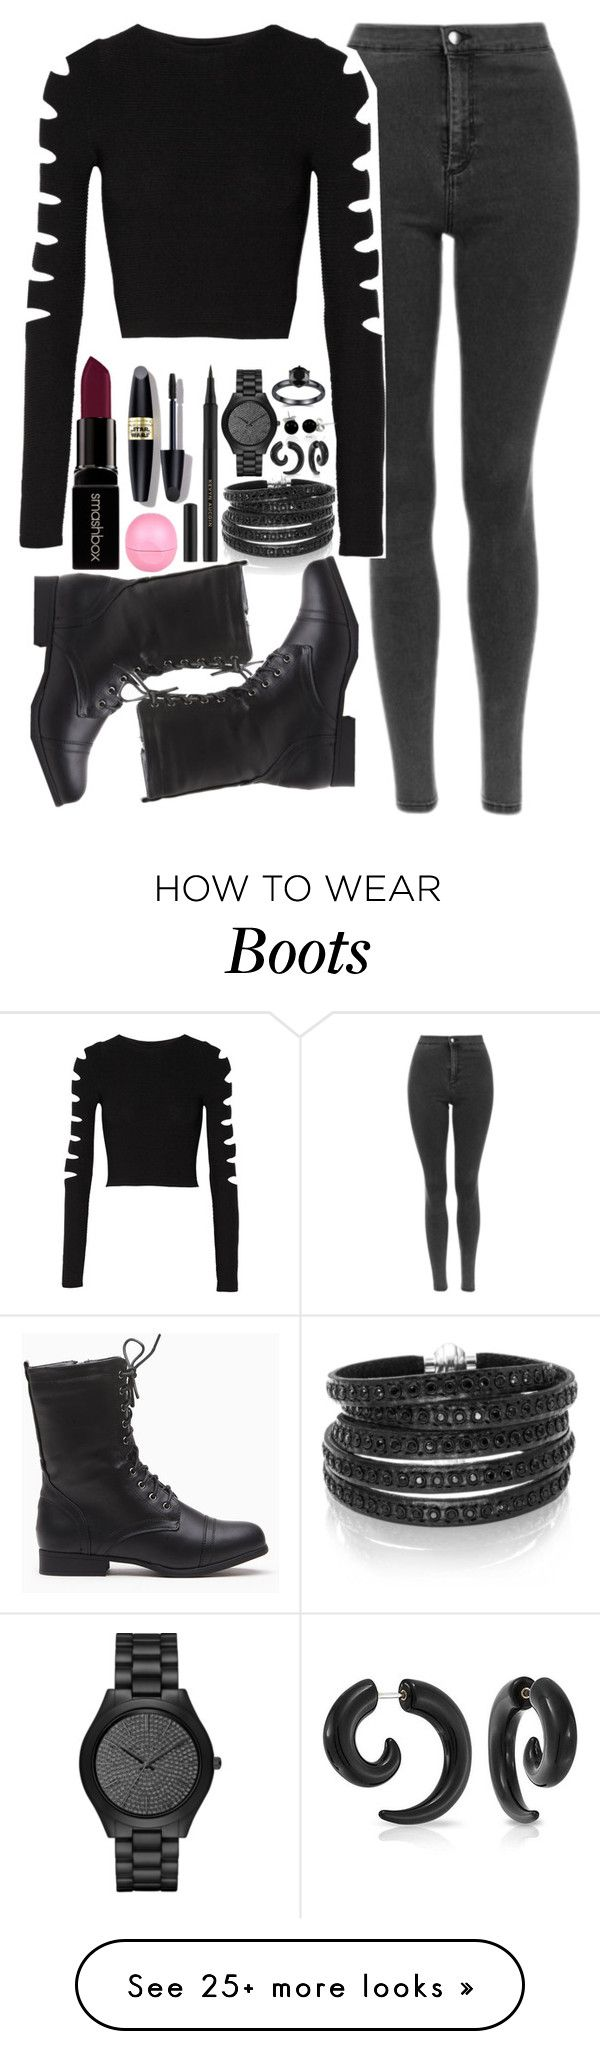 """""""Shadowhunter Style"""" by lalalasprinkles on Polyvore featuring Sif Jakobs Jewellery, Cushnie Et Ochs, Bling Jewelry, Smashbox, River Island, Max Factor, Kevyn Aucoin, Michael Kors, women's clothing and women's fashion"""